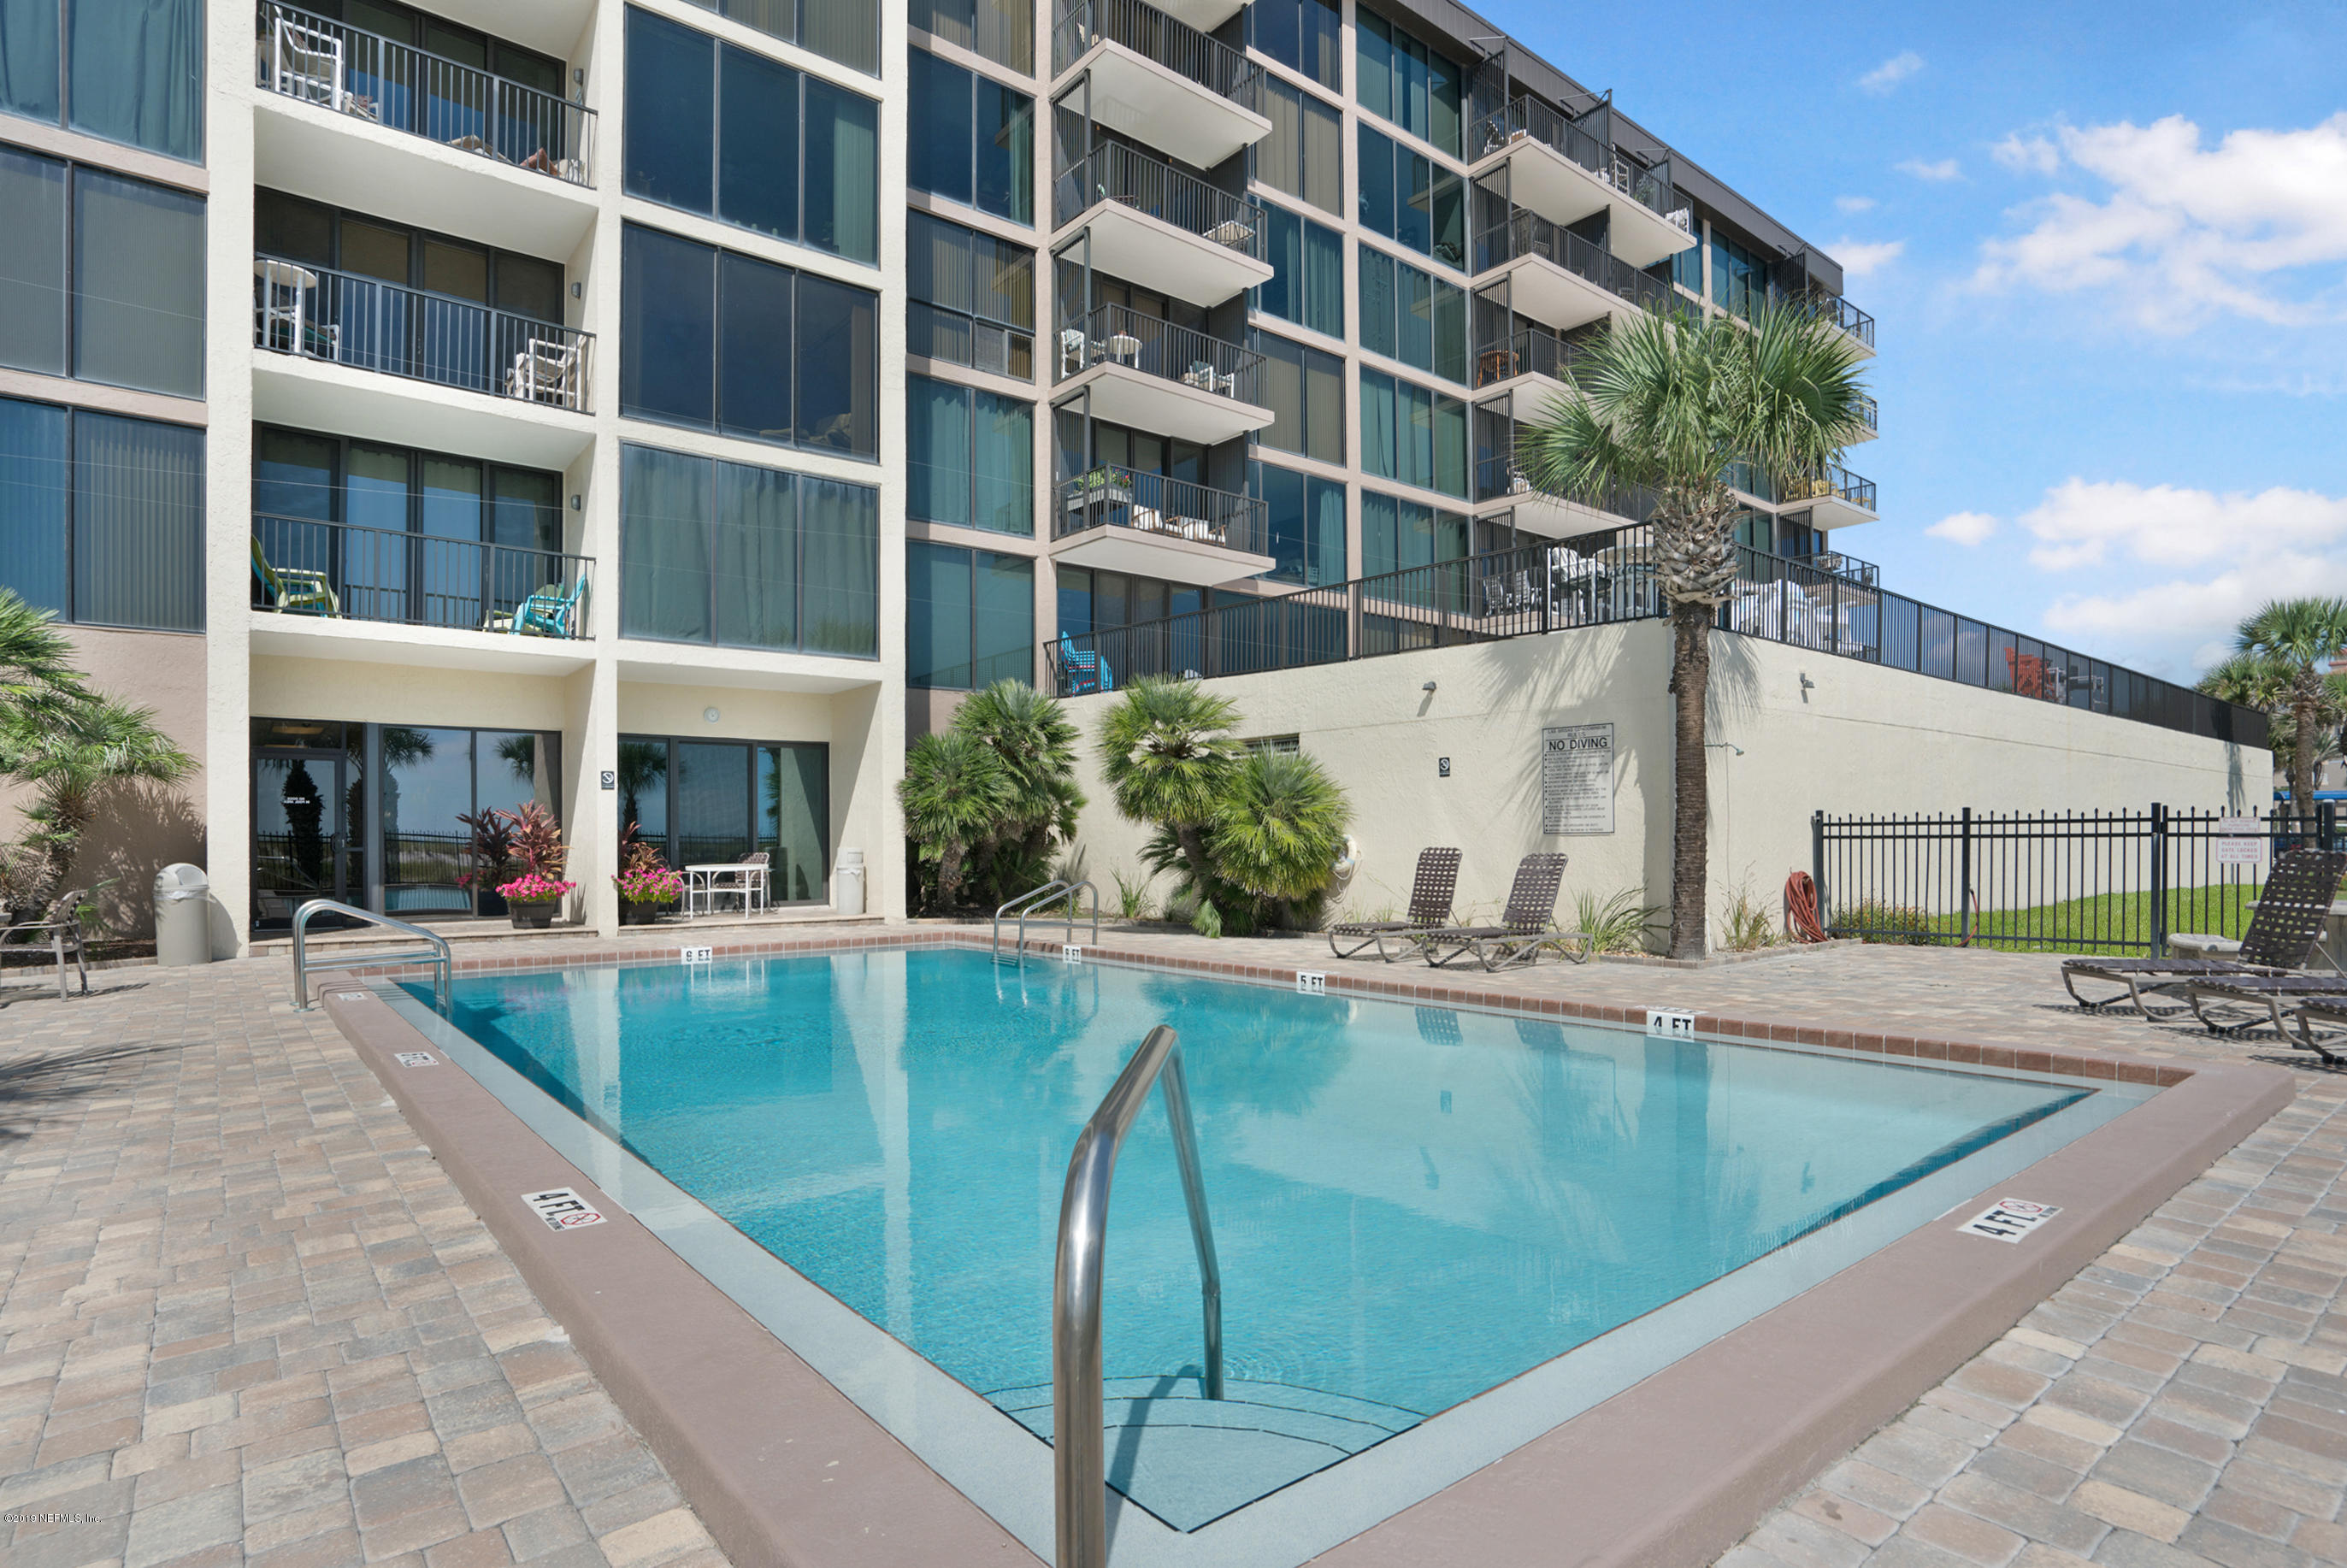 601 1ST- JACKSONVILLE BEACH- FLORIDA 32250, 1 Bedroom Bedrooms, ,1 BathroomBathrooms,Condo,For sale,1ST,1013232